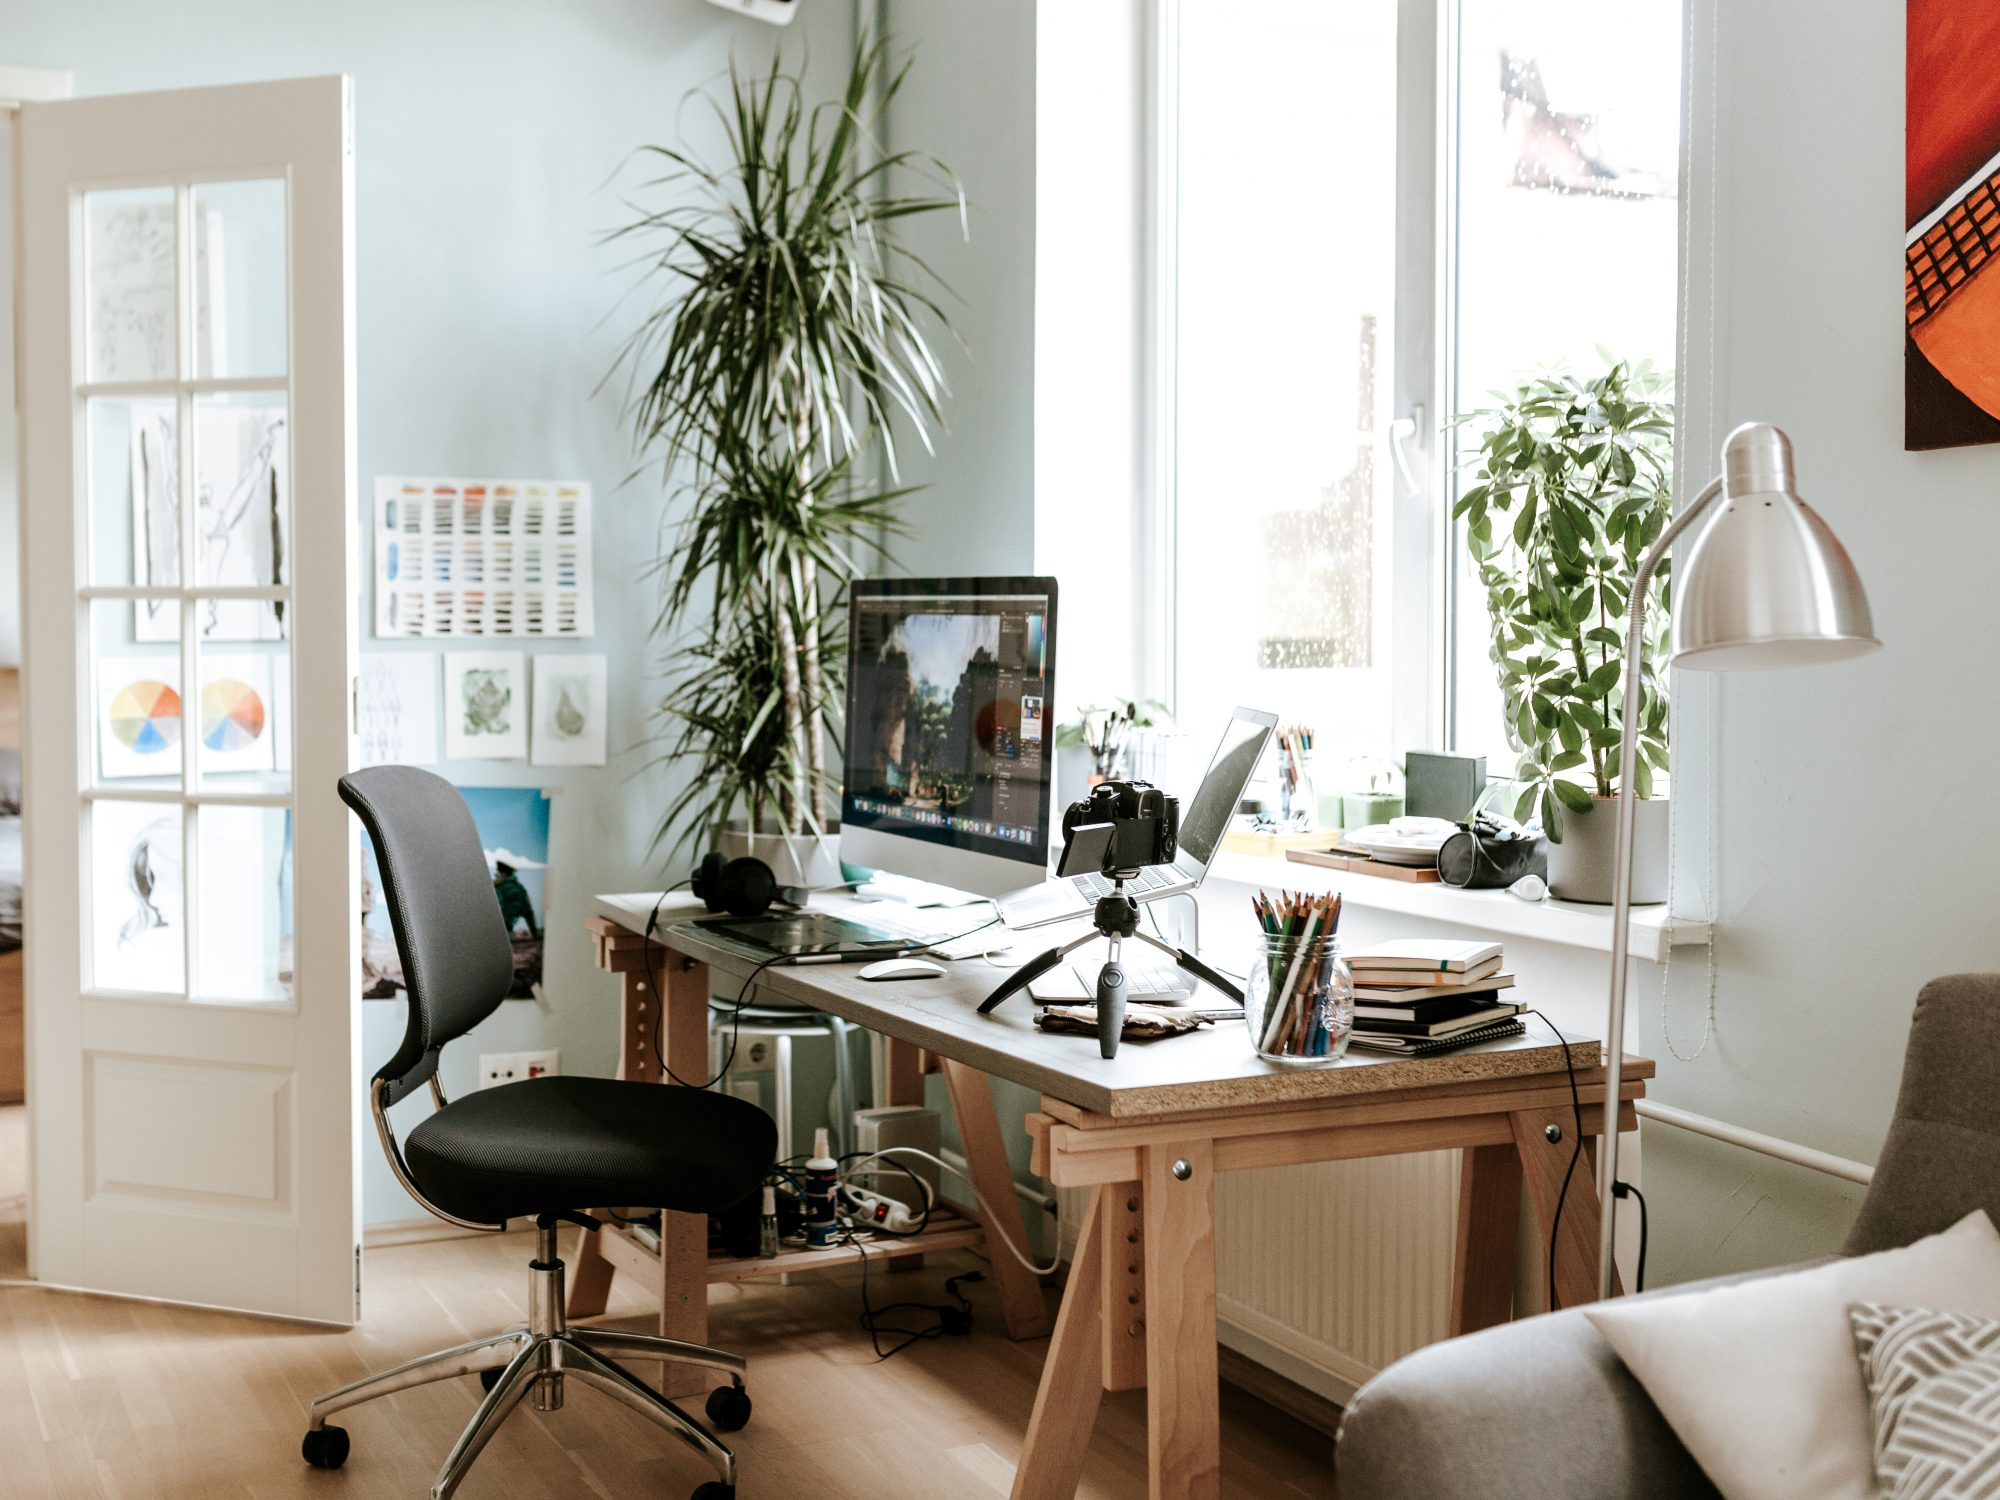 Room Layout Mistakes, According to Feng Shui, desk facing window